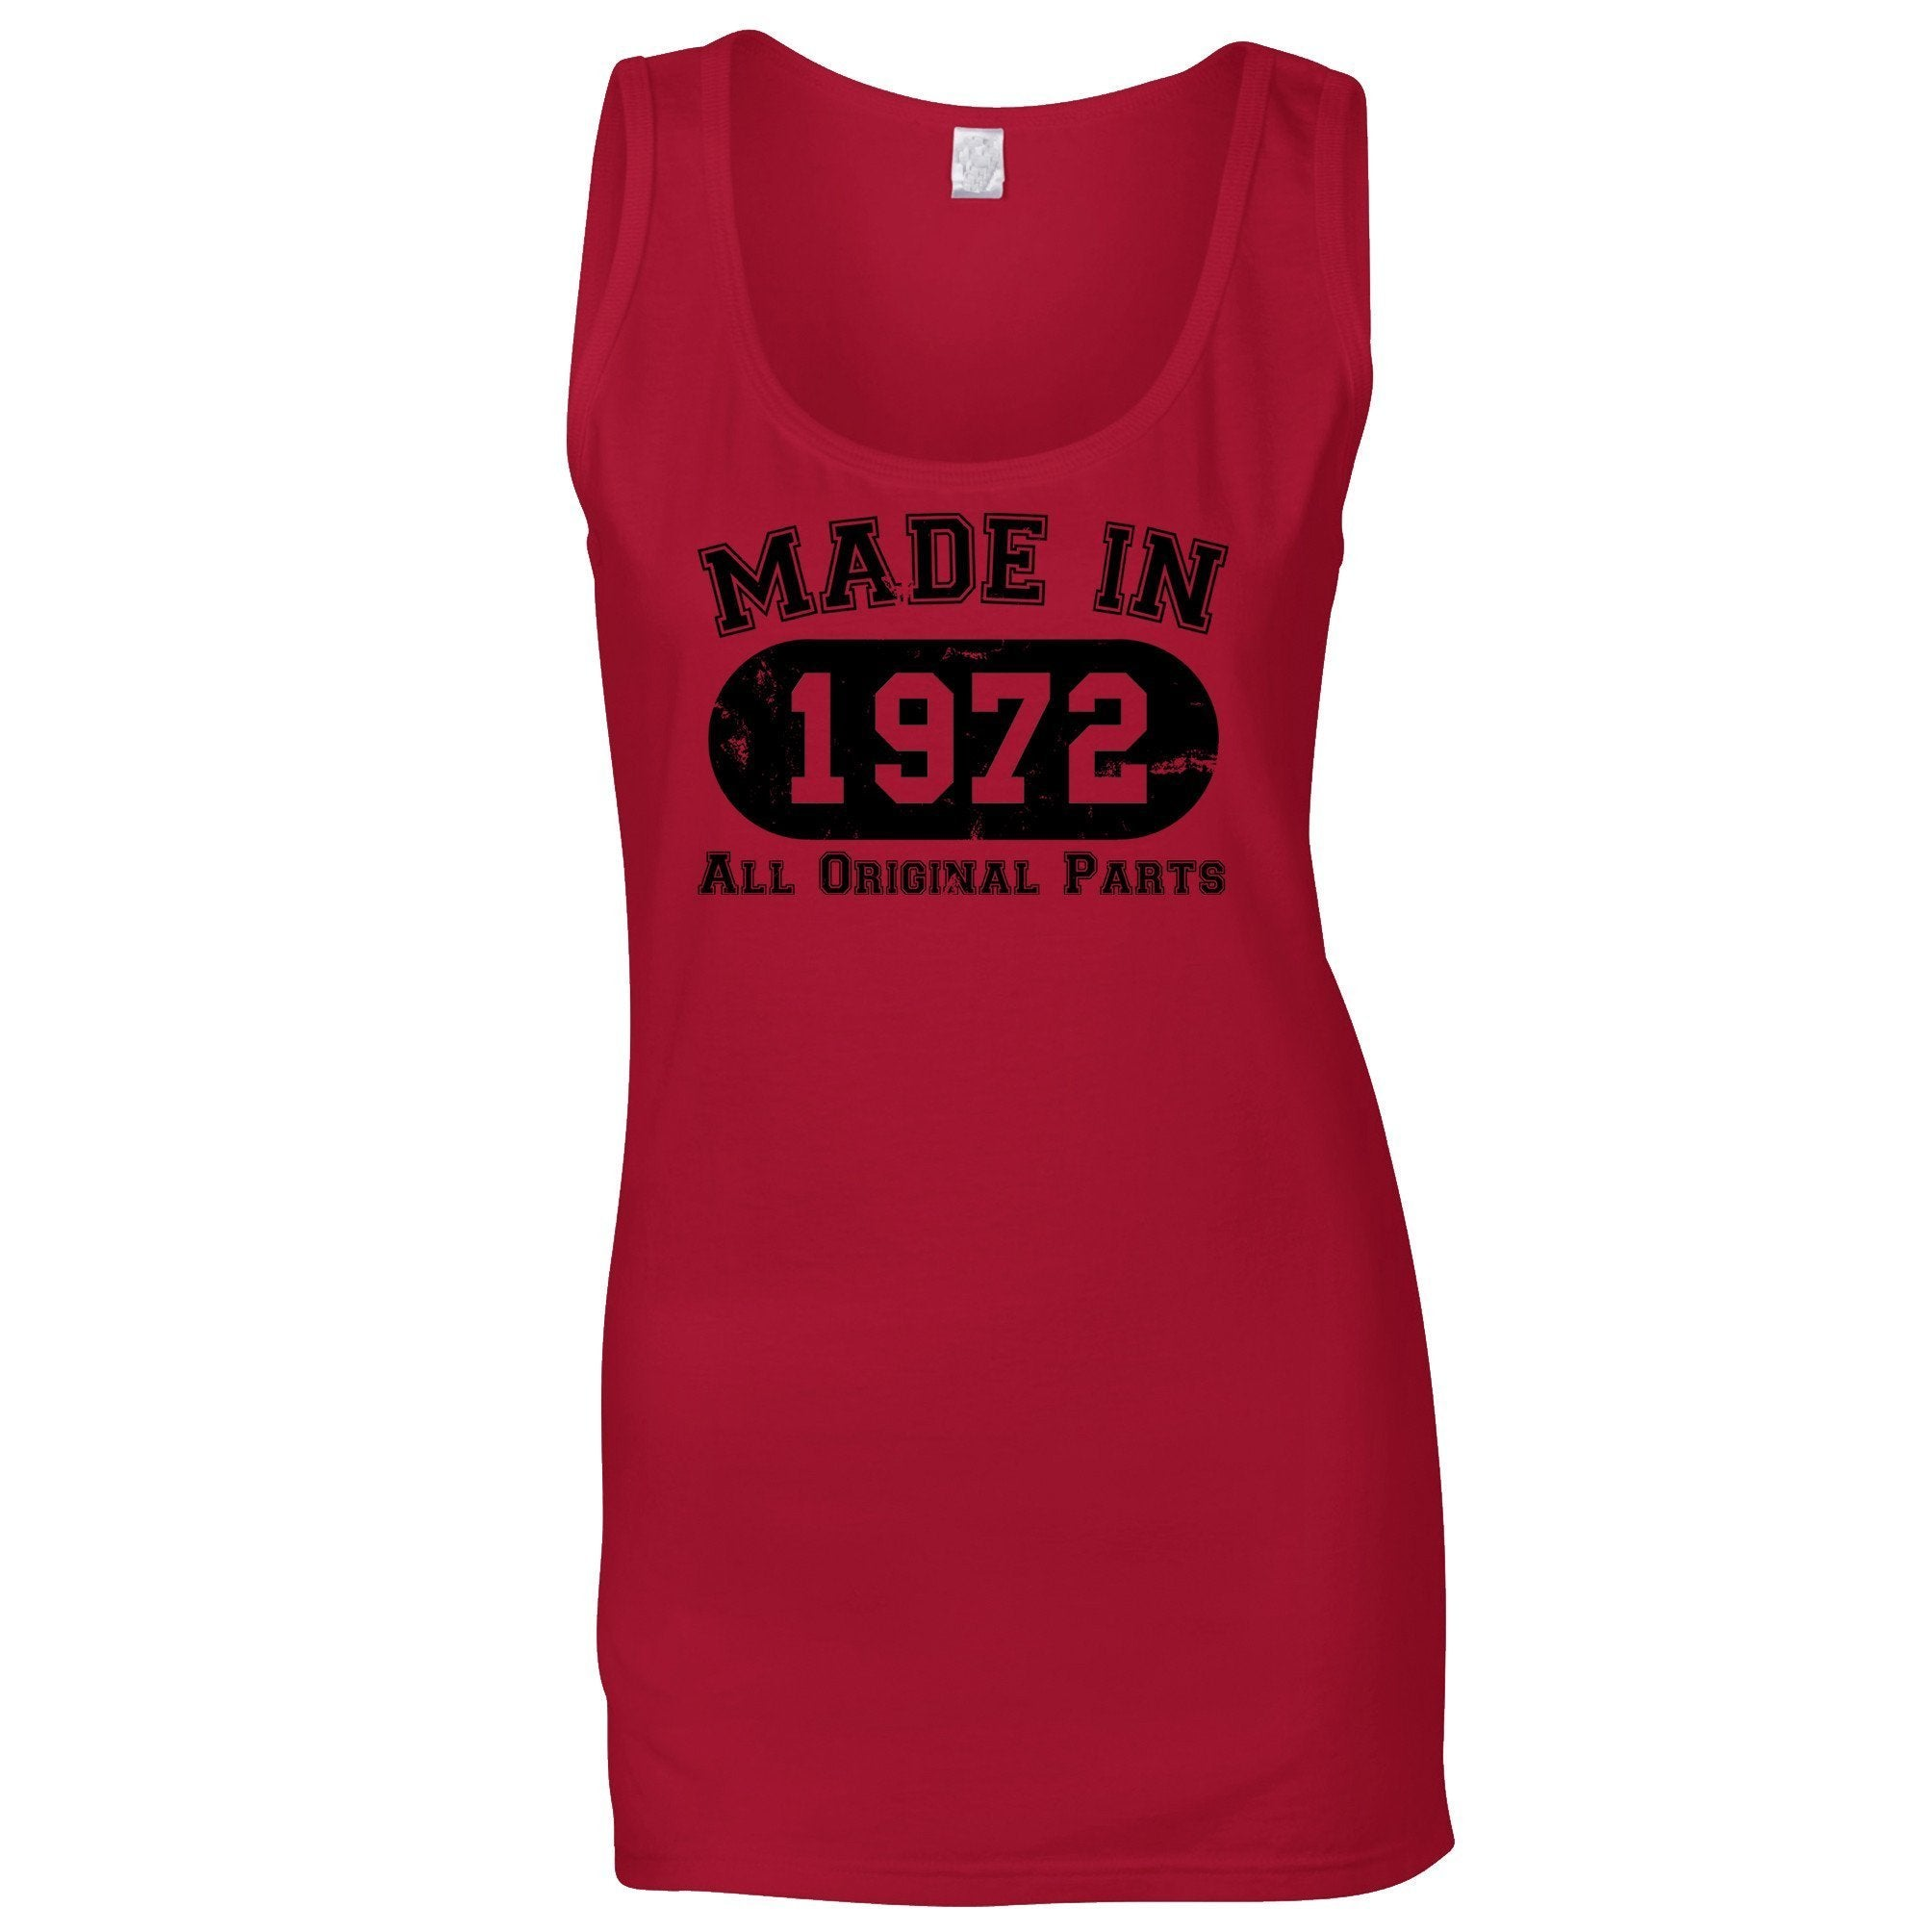 Made in 1972 All Original Parts Womens Vest [Distressed]